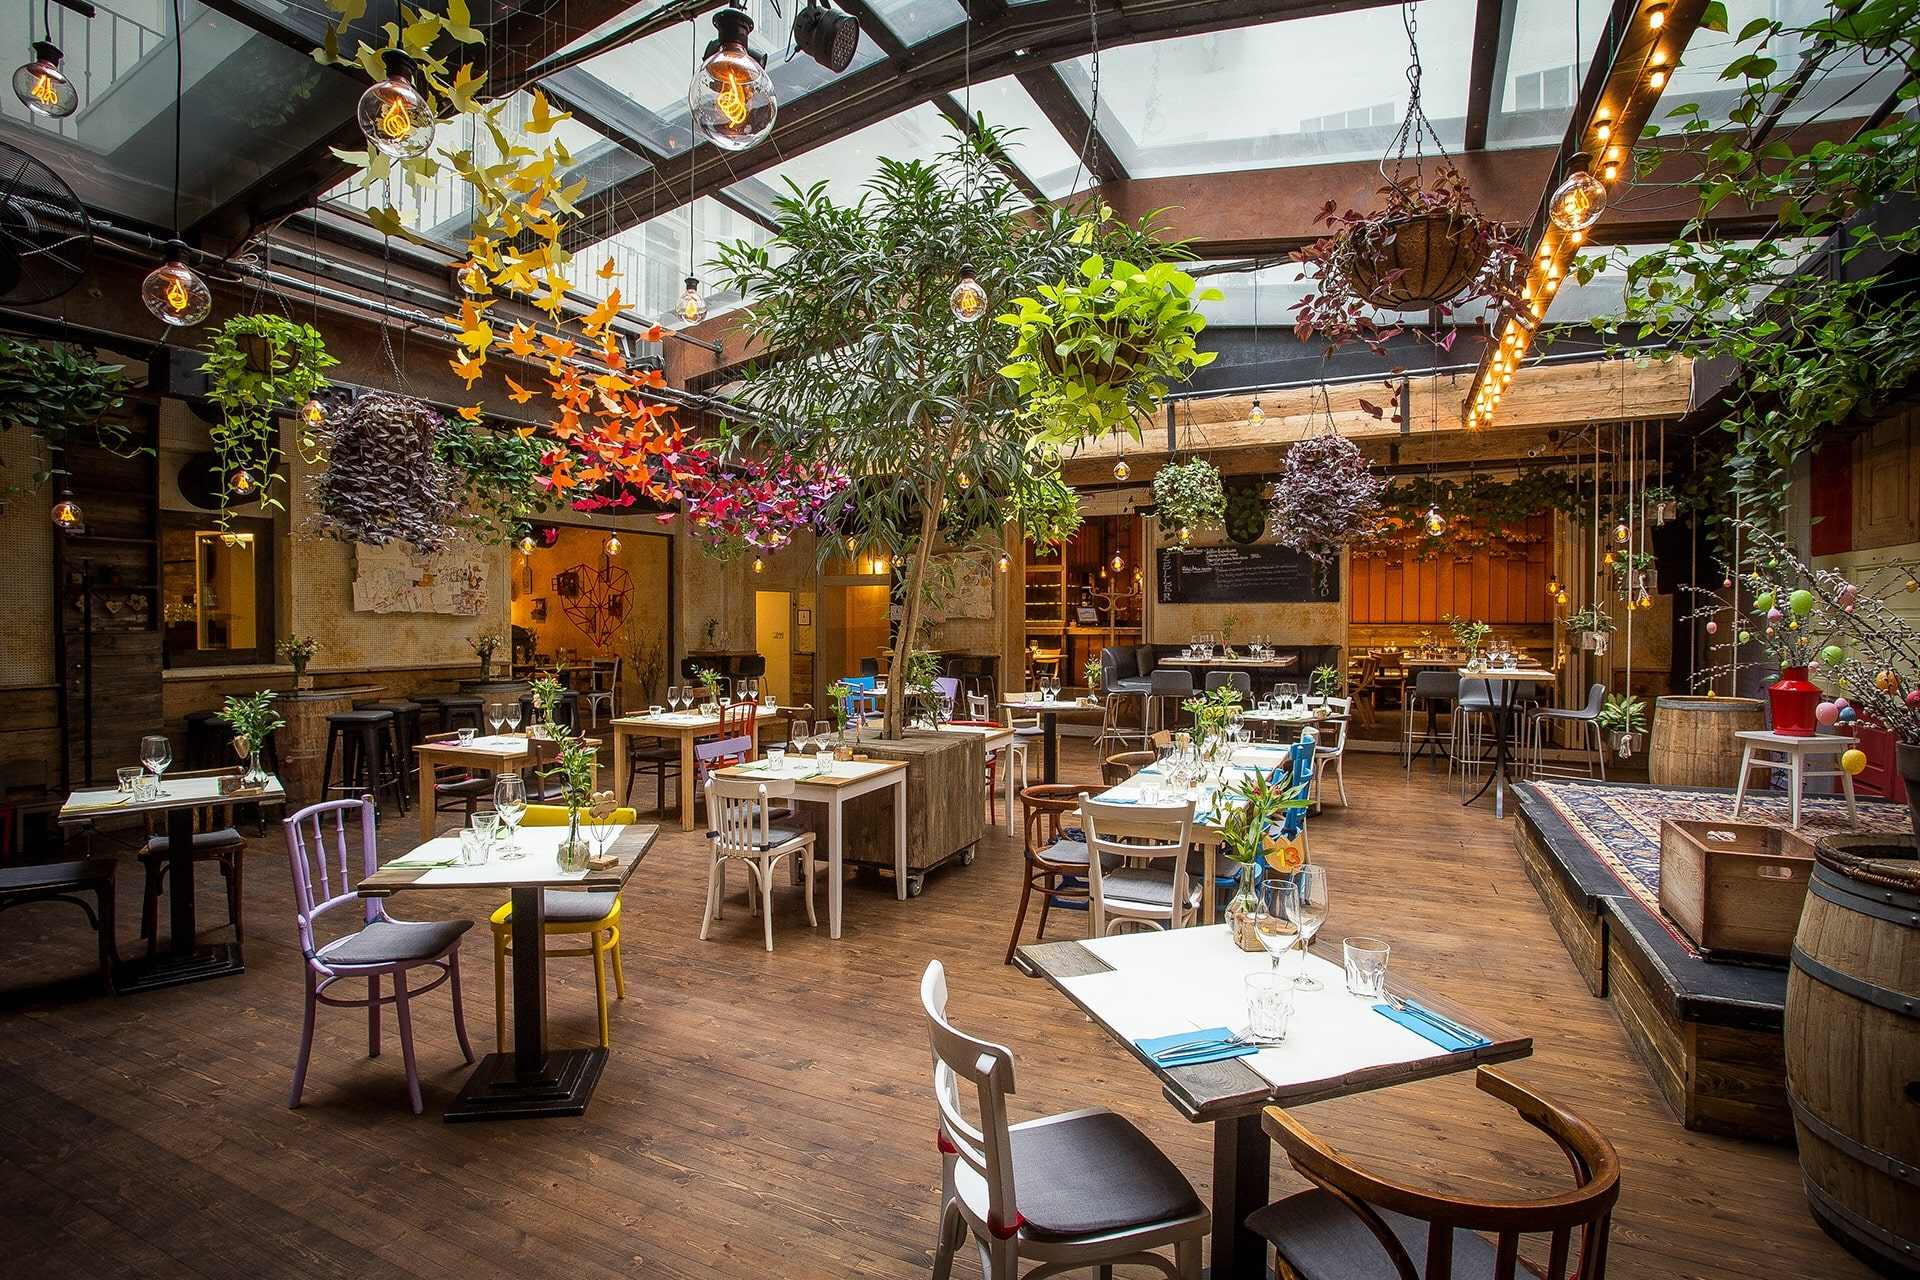 interior-of-zeller-bistro-restaurant-with-plants-coming-down-from-ceiling-4-days-in-budapest-itinerary